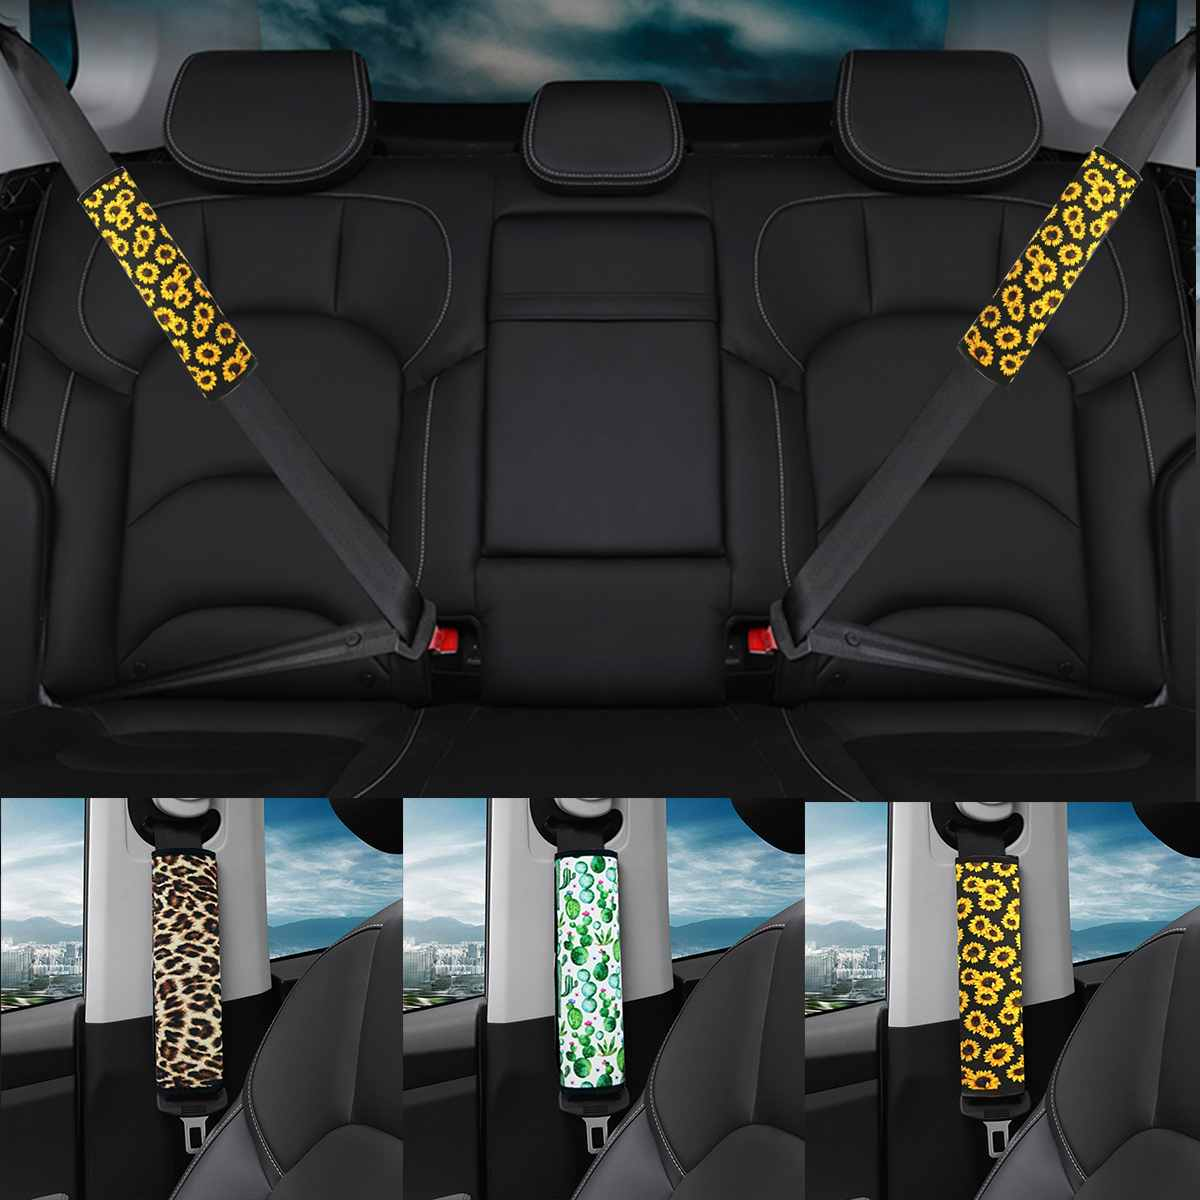 Sunflower Seat Belt Covers Neoprene Car Shoulder Pad Car Truck SUV Airplane Auto Seat Belt Backpack Straps for Adults Youth Kids image